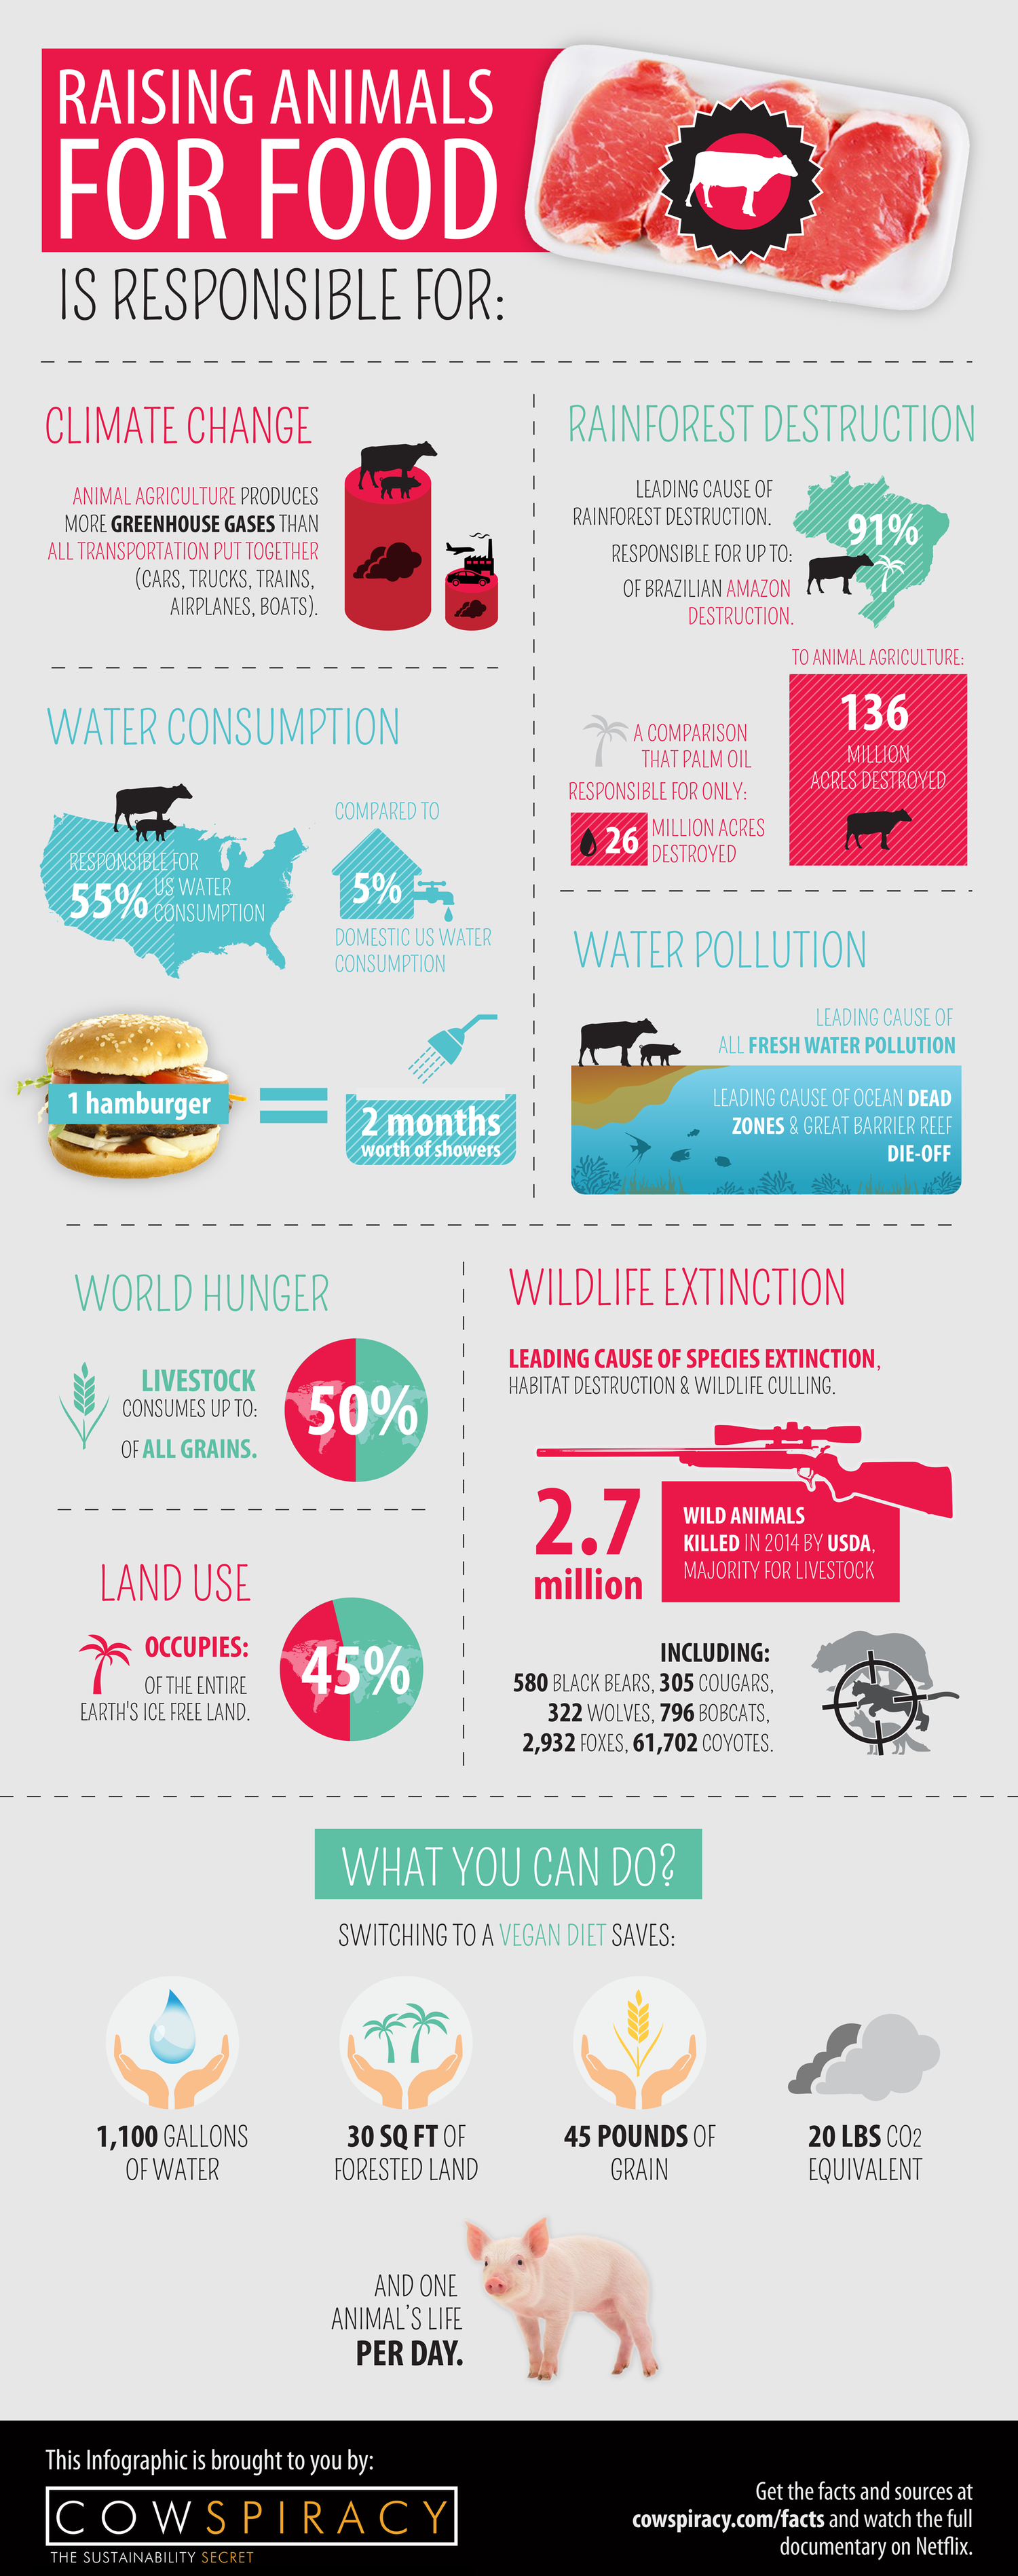 why take a vegan pledge? raising animals for food is